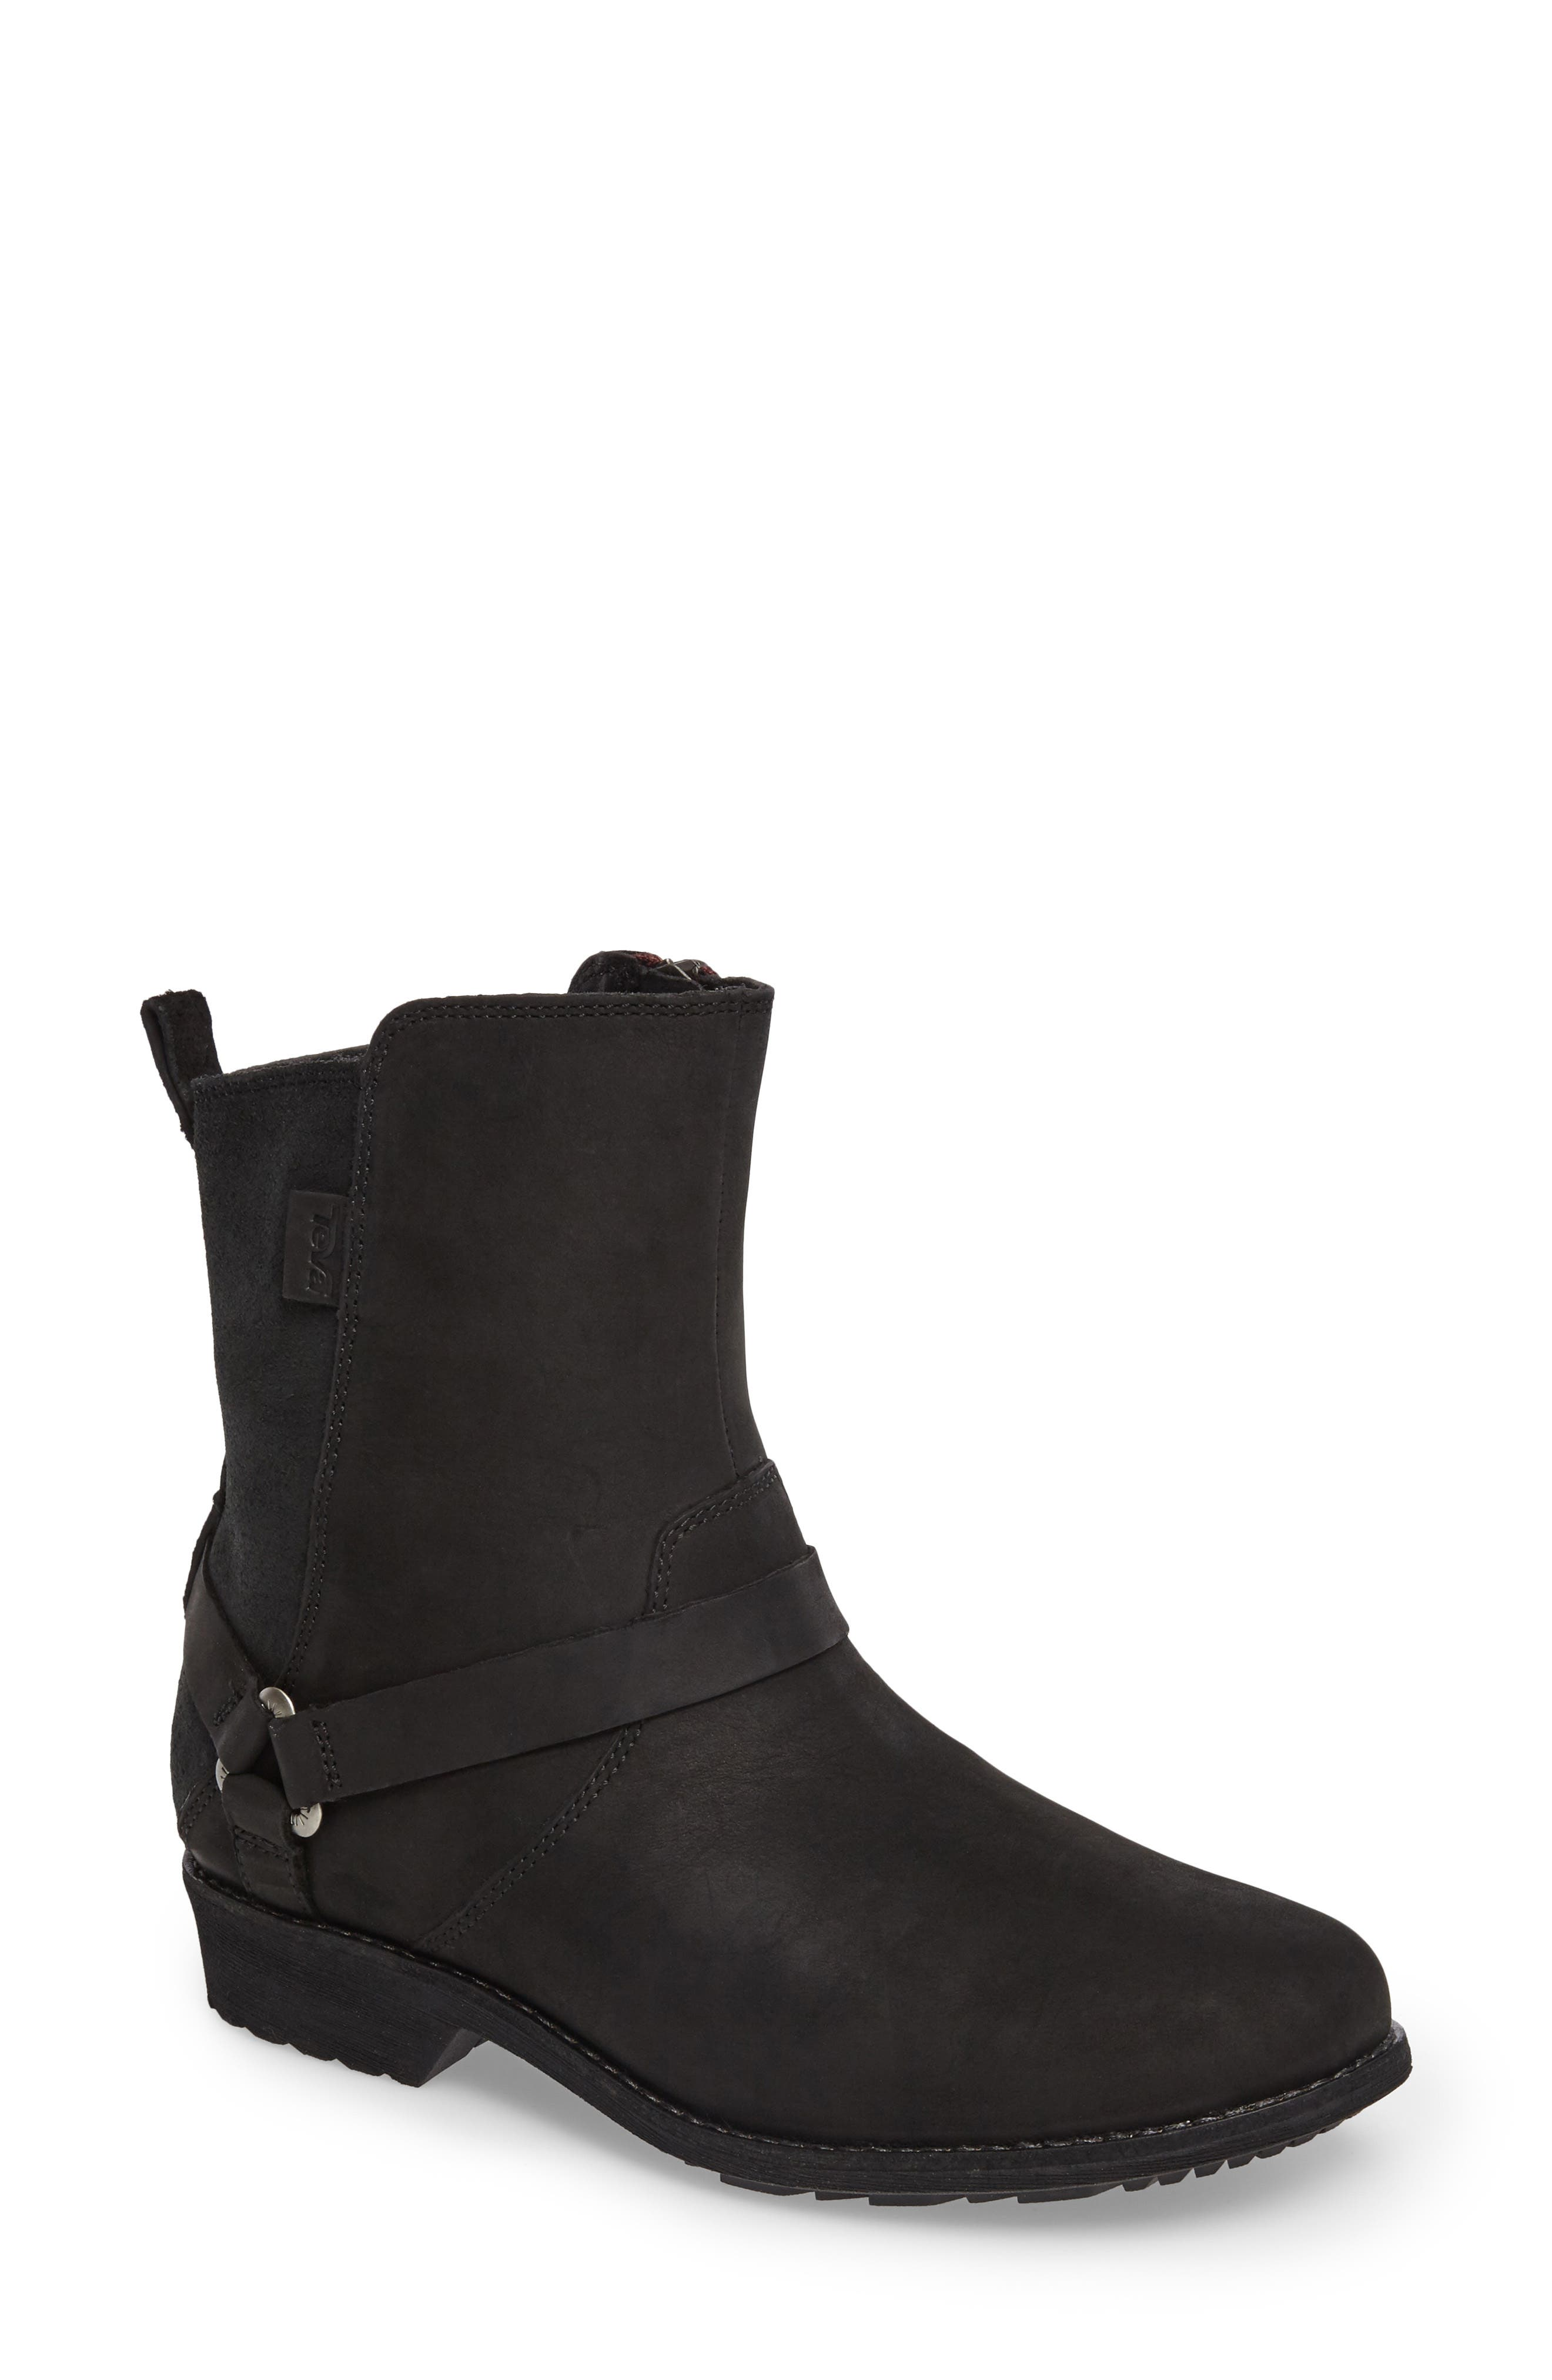 Teva De La Vina Dos Waterproof Boot- Black